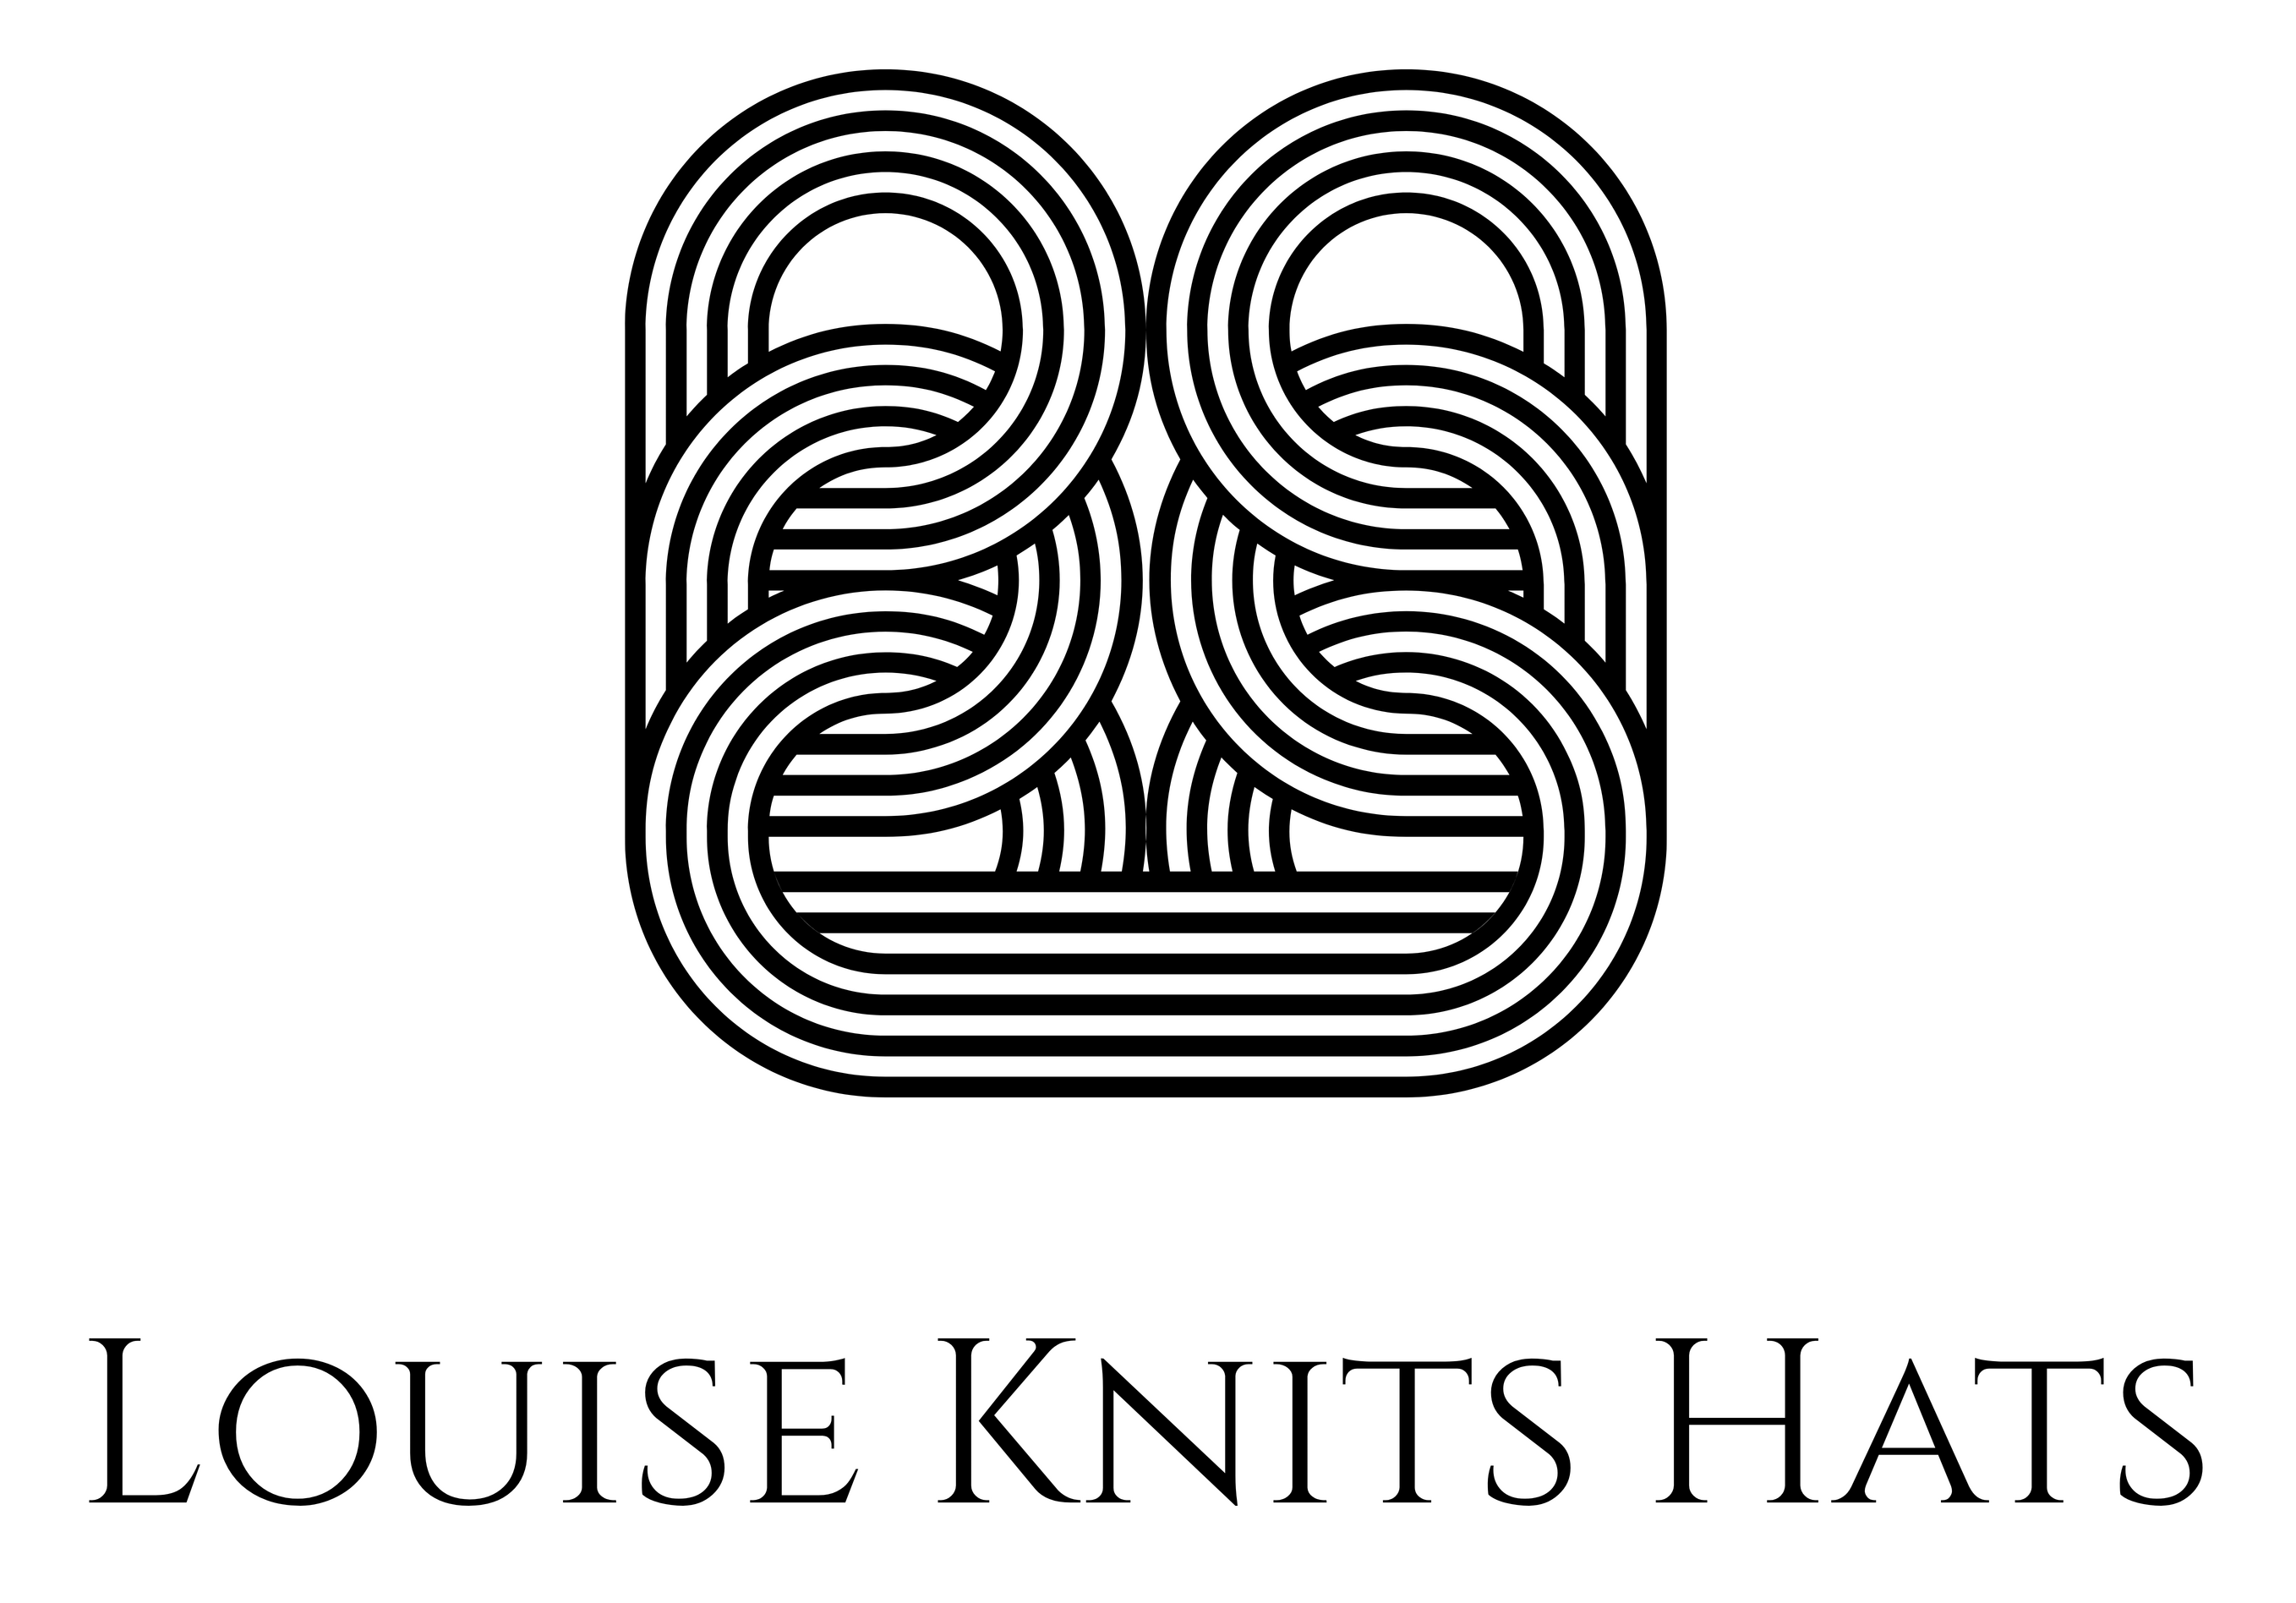 louise knits hats